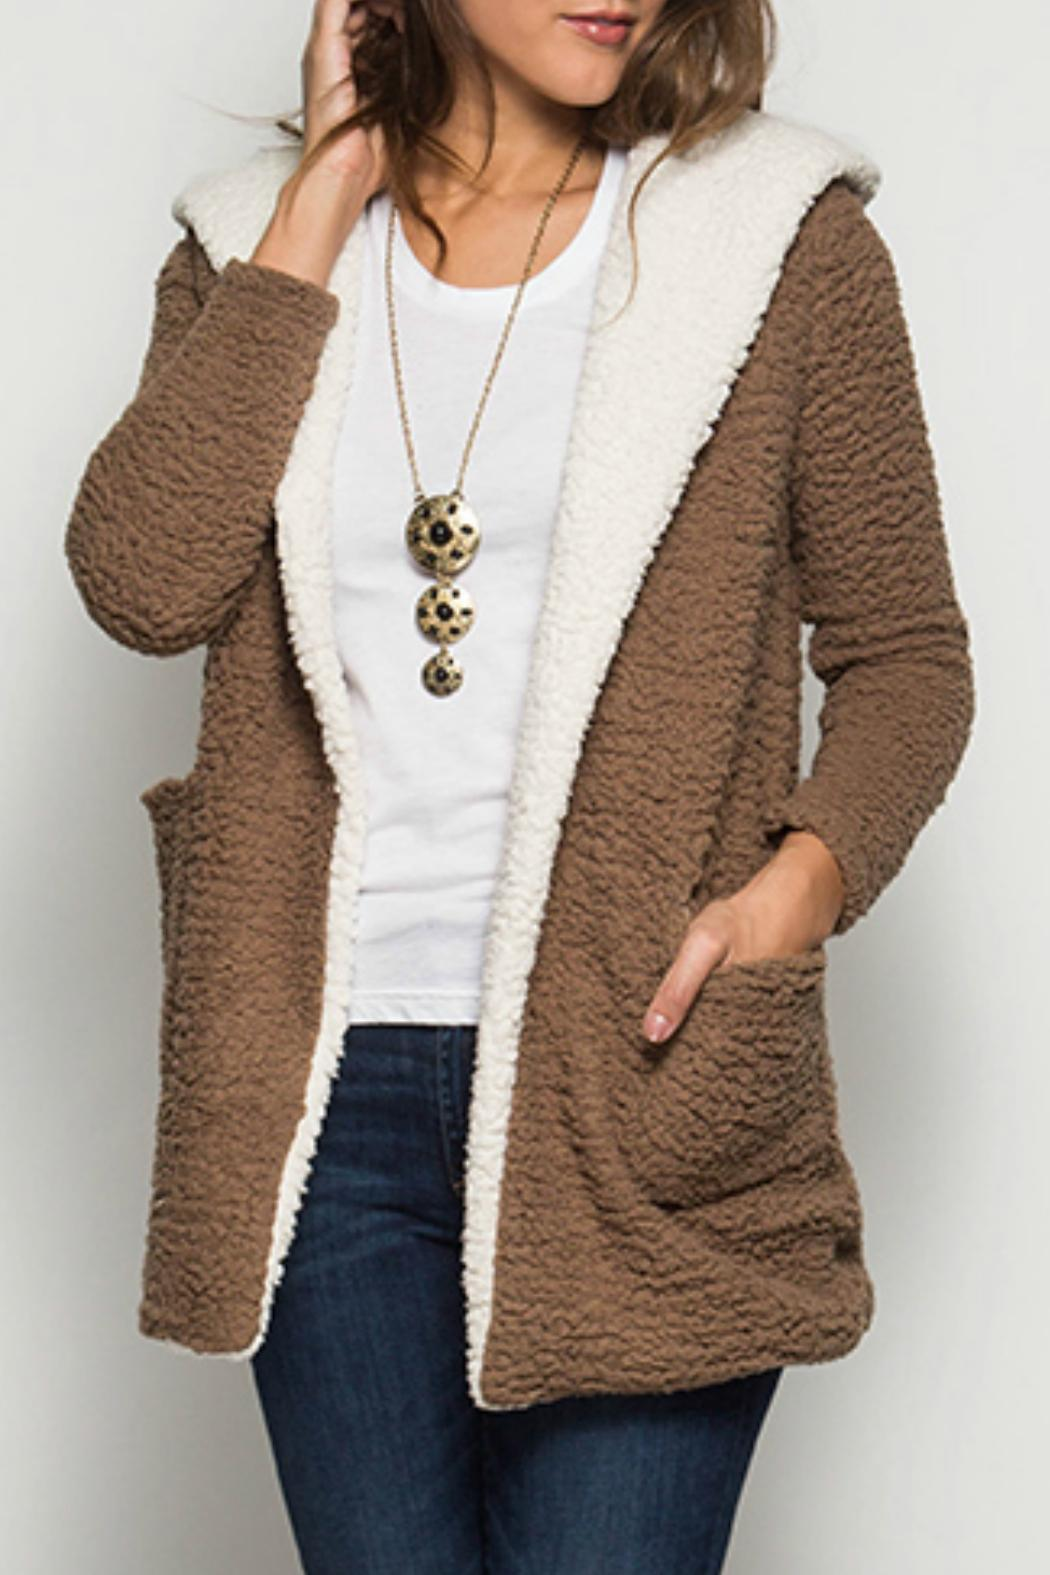 Papillon Super Soft Coat from Indiana by 58 South — Shoptiques